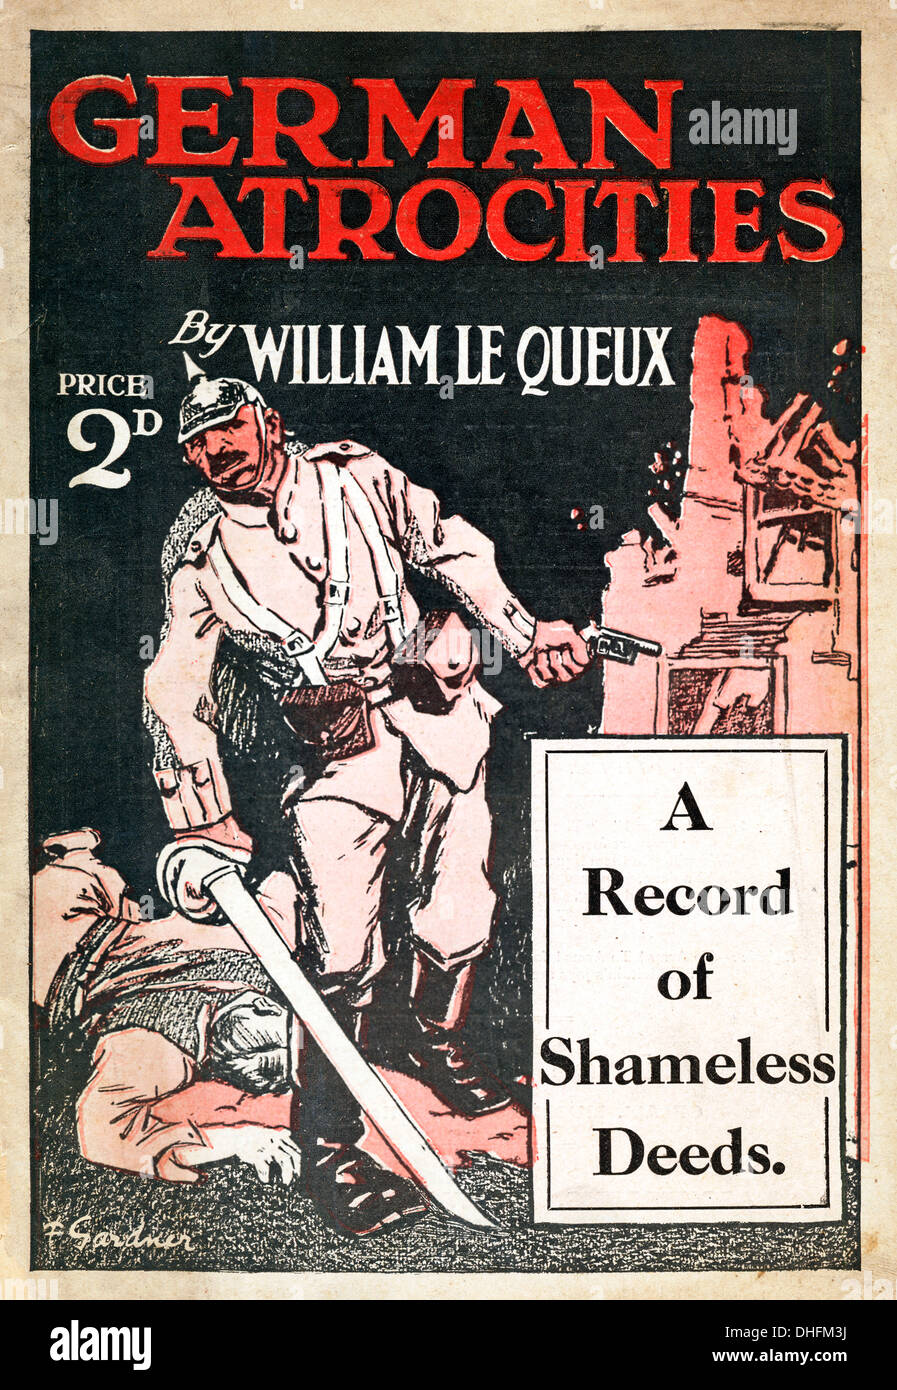 German Atrocities, 1917 Cover of a British Great War propaganda booklet, A Record of Shameless Deeds on the Western Front - Stock Image